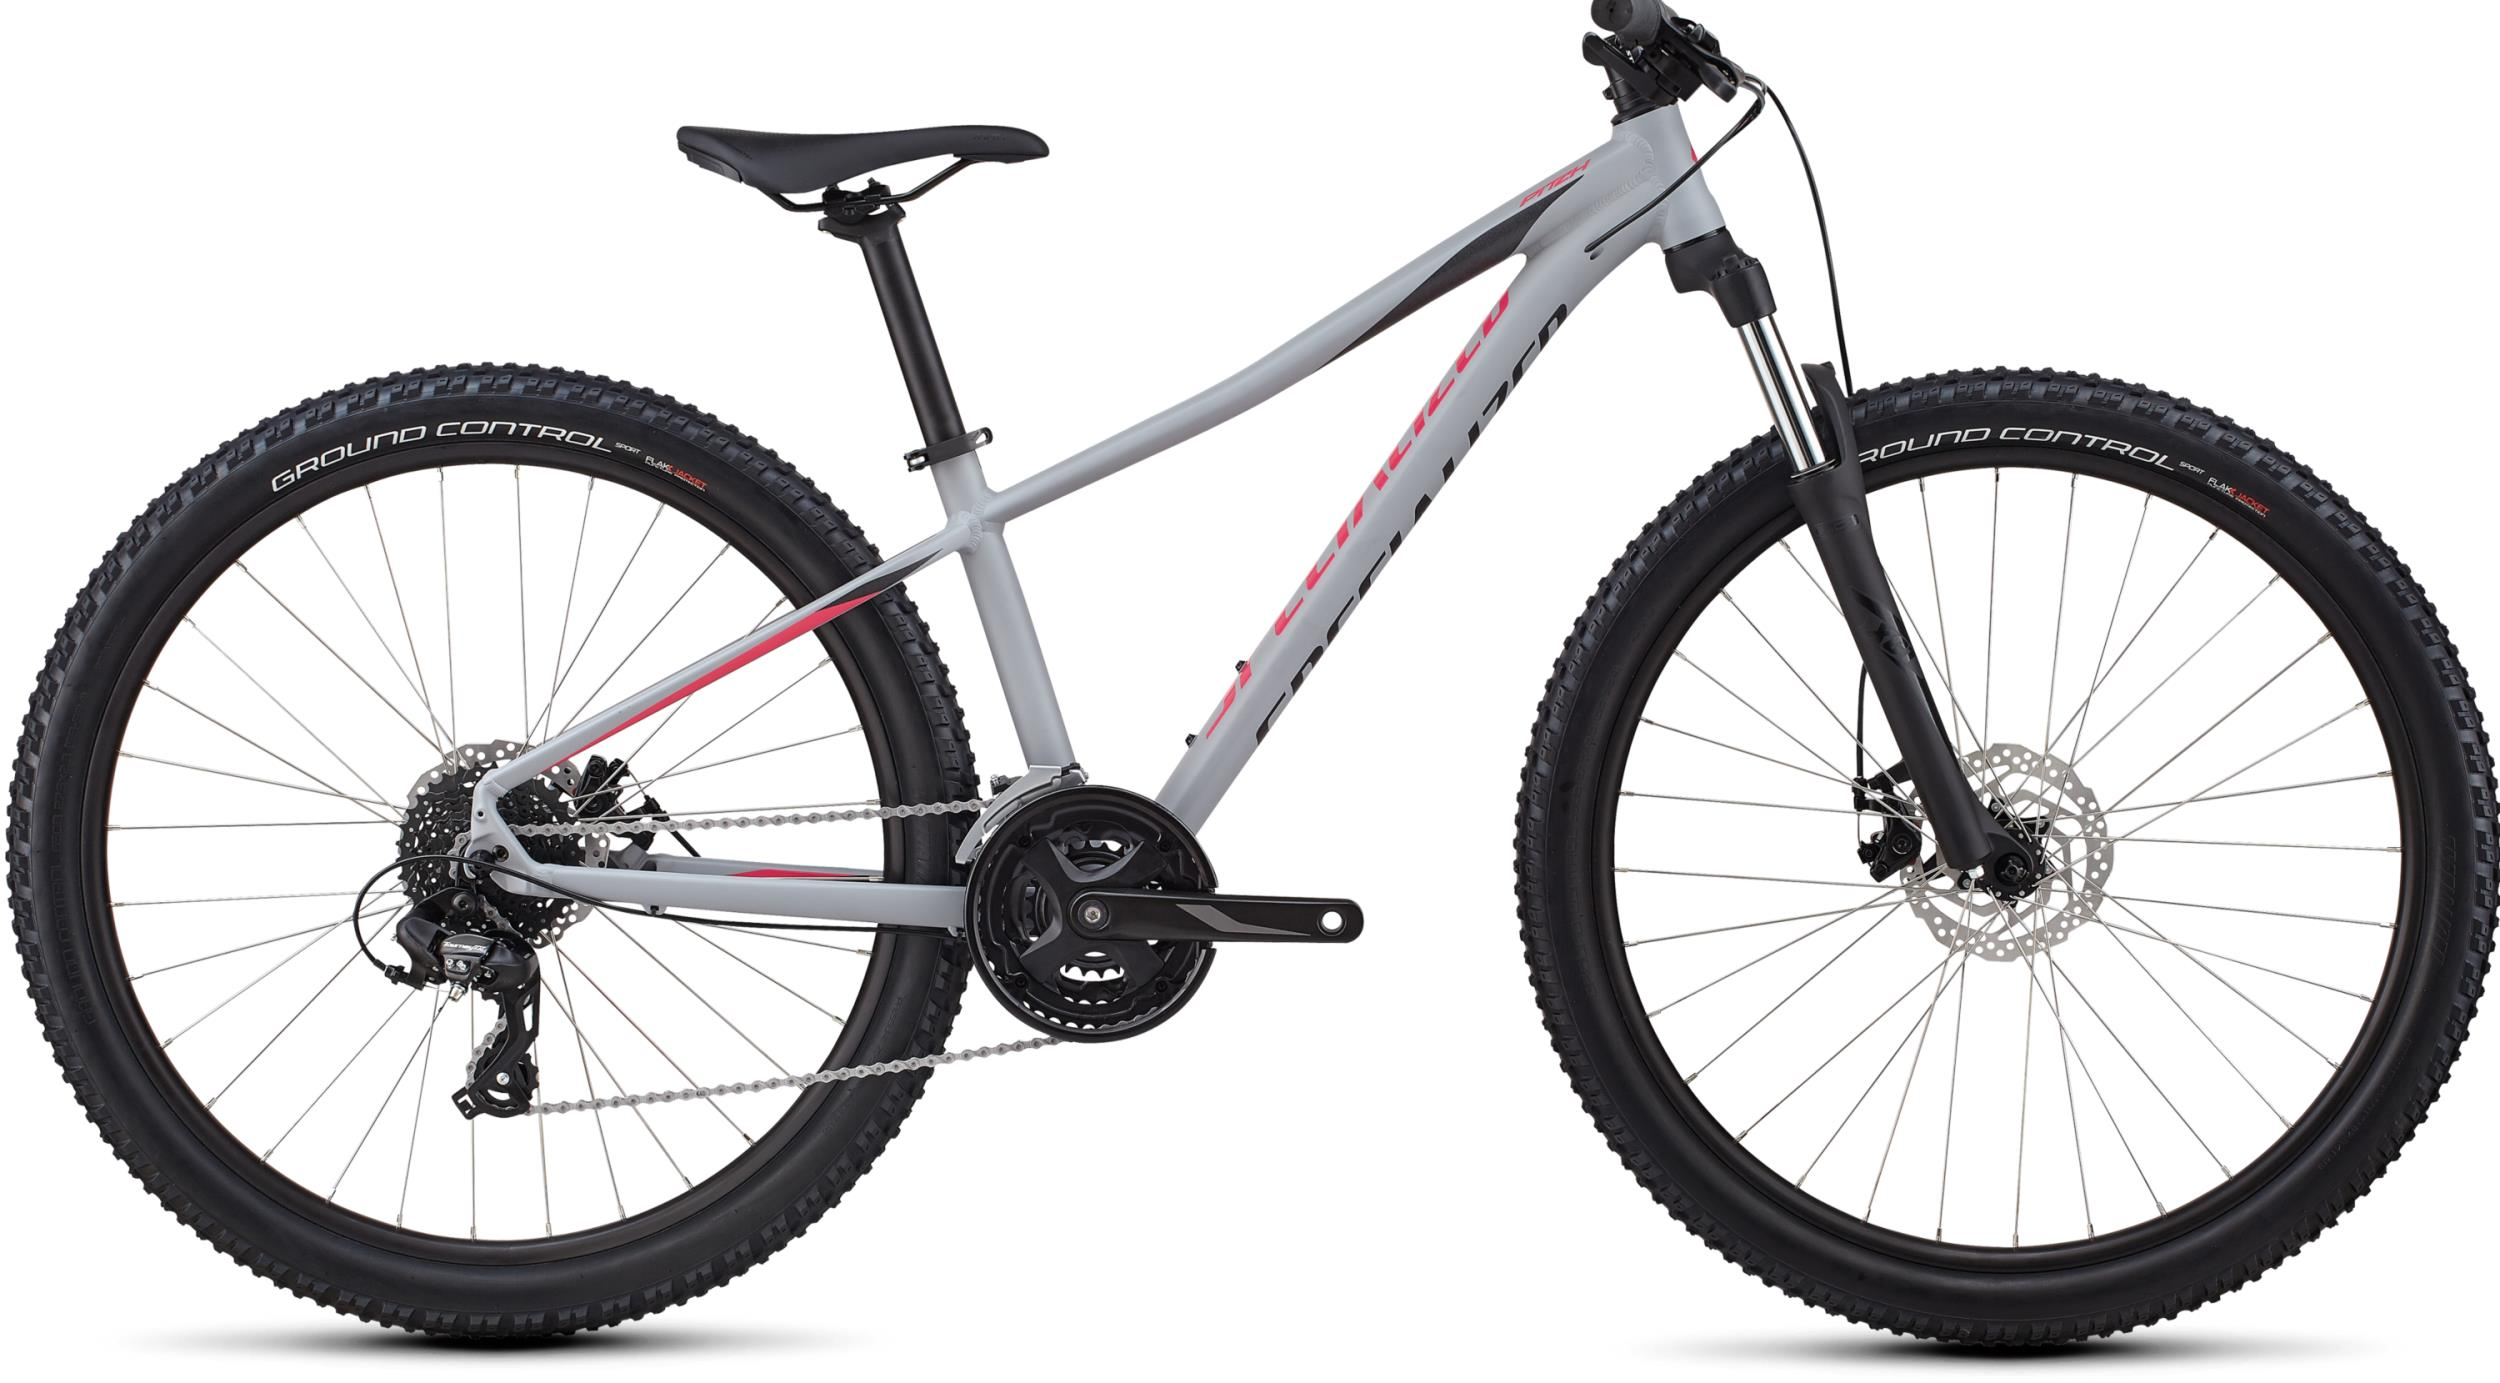 Specialized Women's Pitch Satin Gloss Cool Grey/Acid Pink/Black/Reflective 2019 - 27.5 -  S